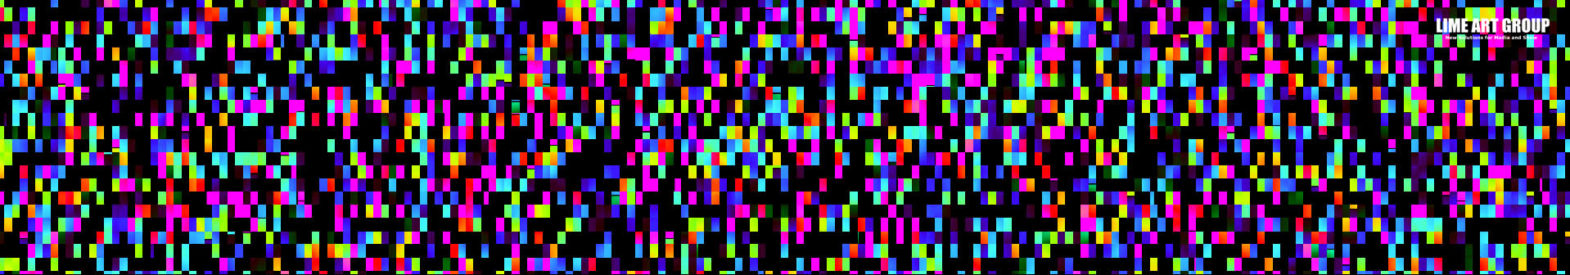 candy vj loops motion background video loop video loops